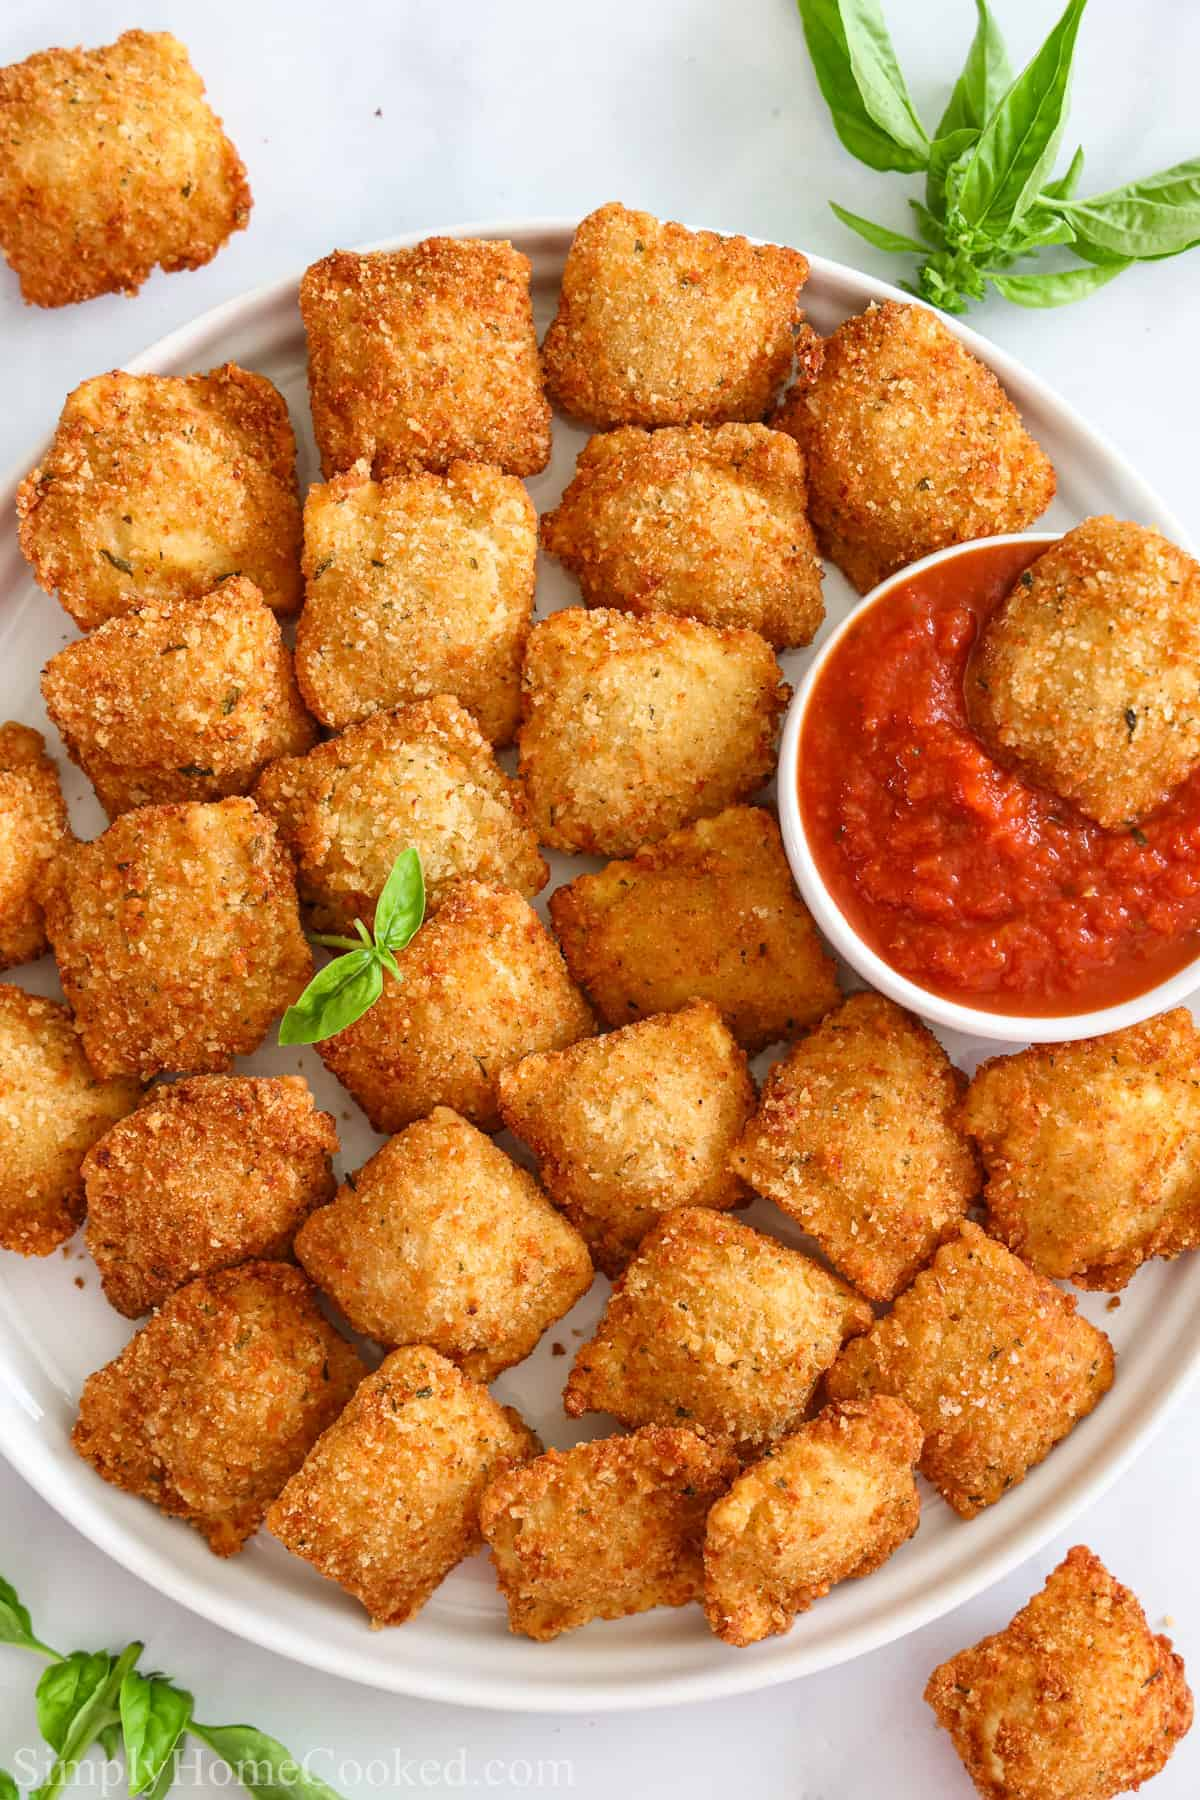 Plate of Crispy Fried Ravioli, with one in a marinara dipping sauce.